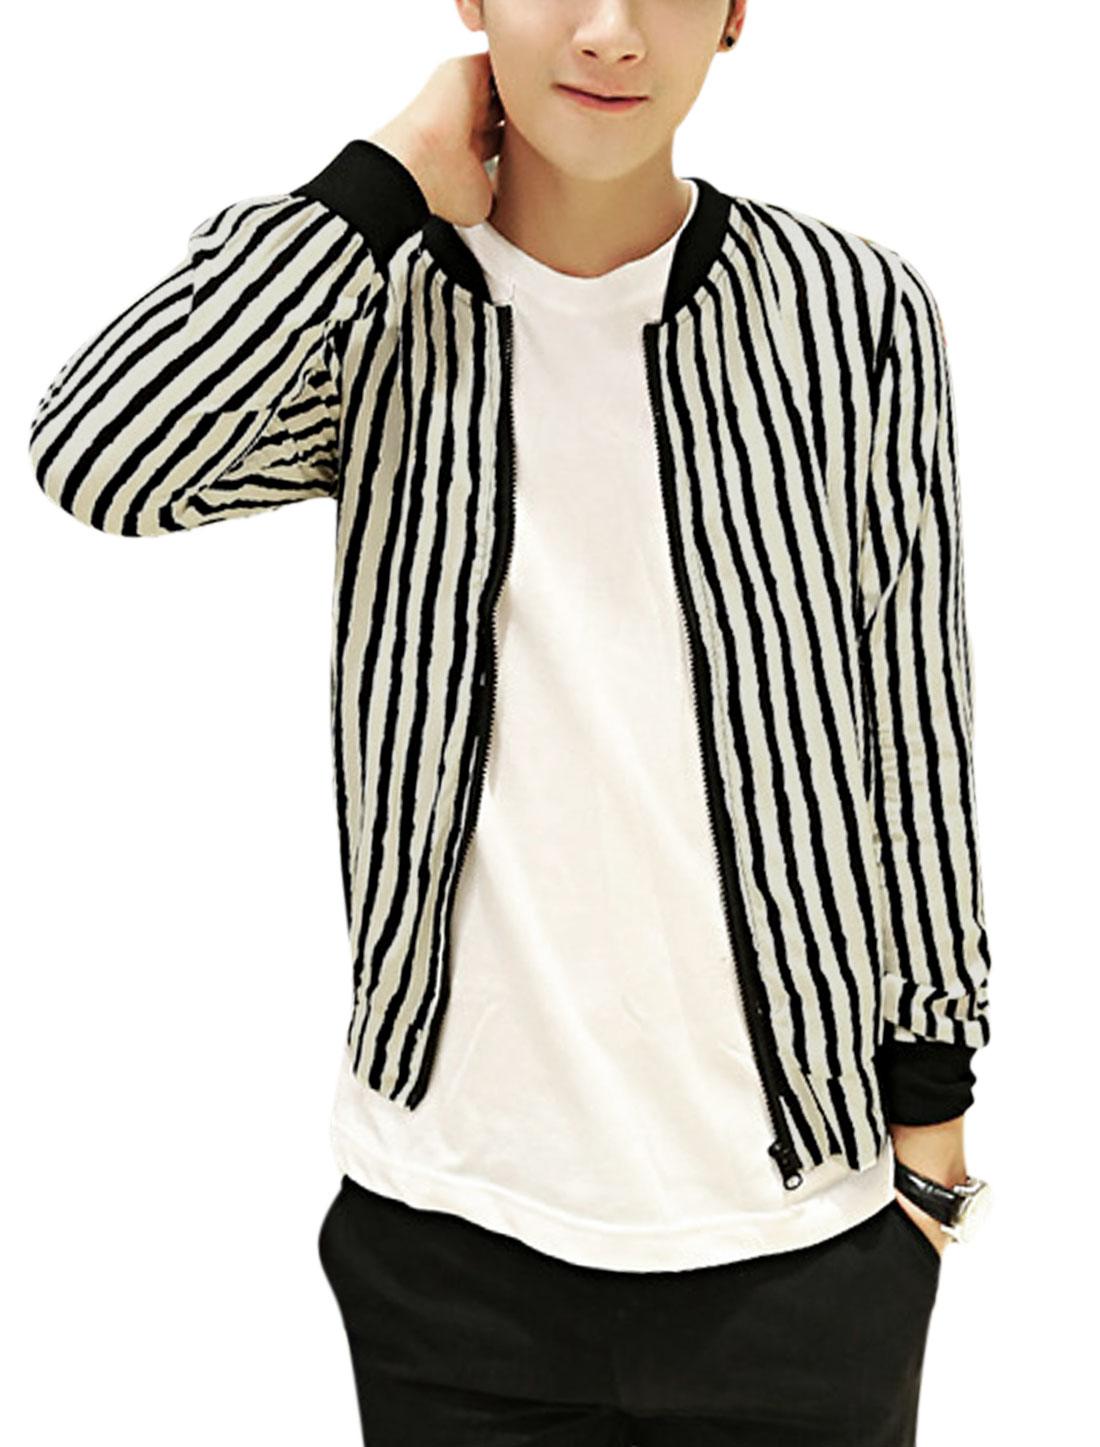 Men Casual Rib Knit Collar Contrast Stripes Pattern Light Jacket Beige Black S